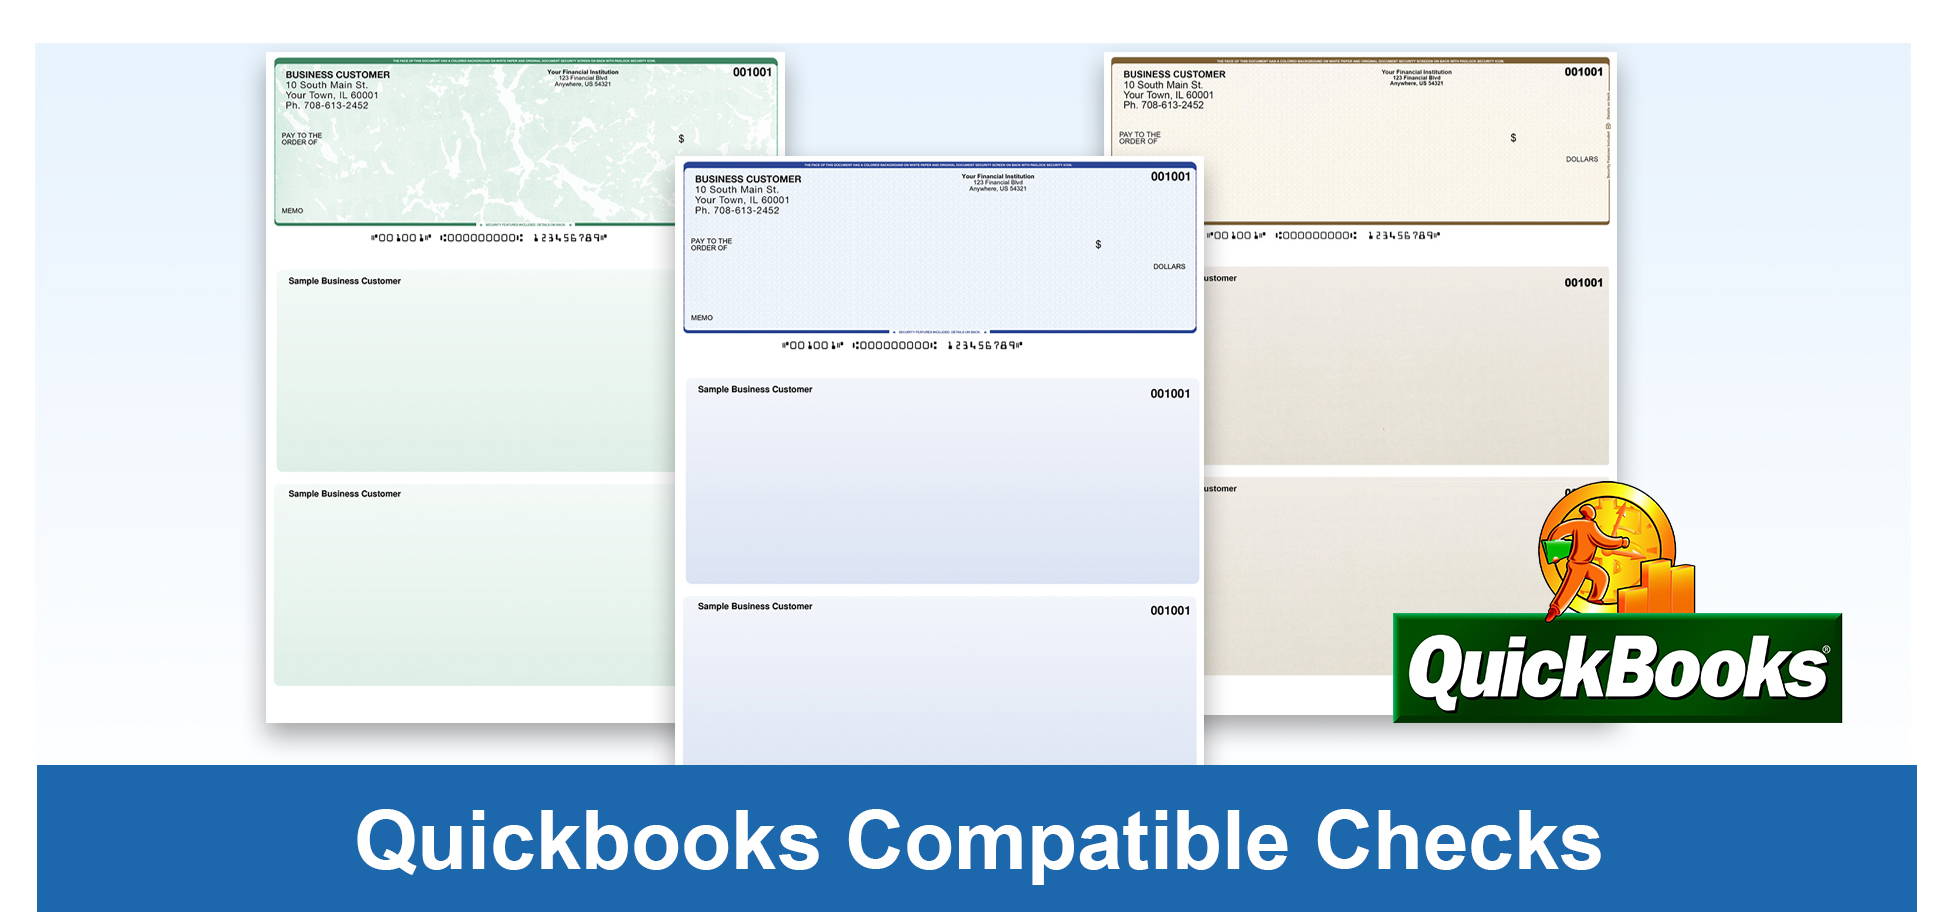 Quickbooks Compatible Checks